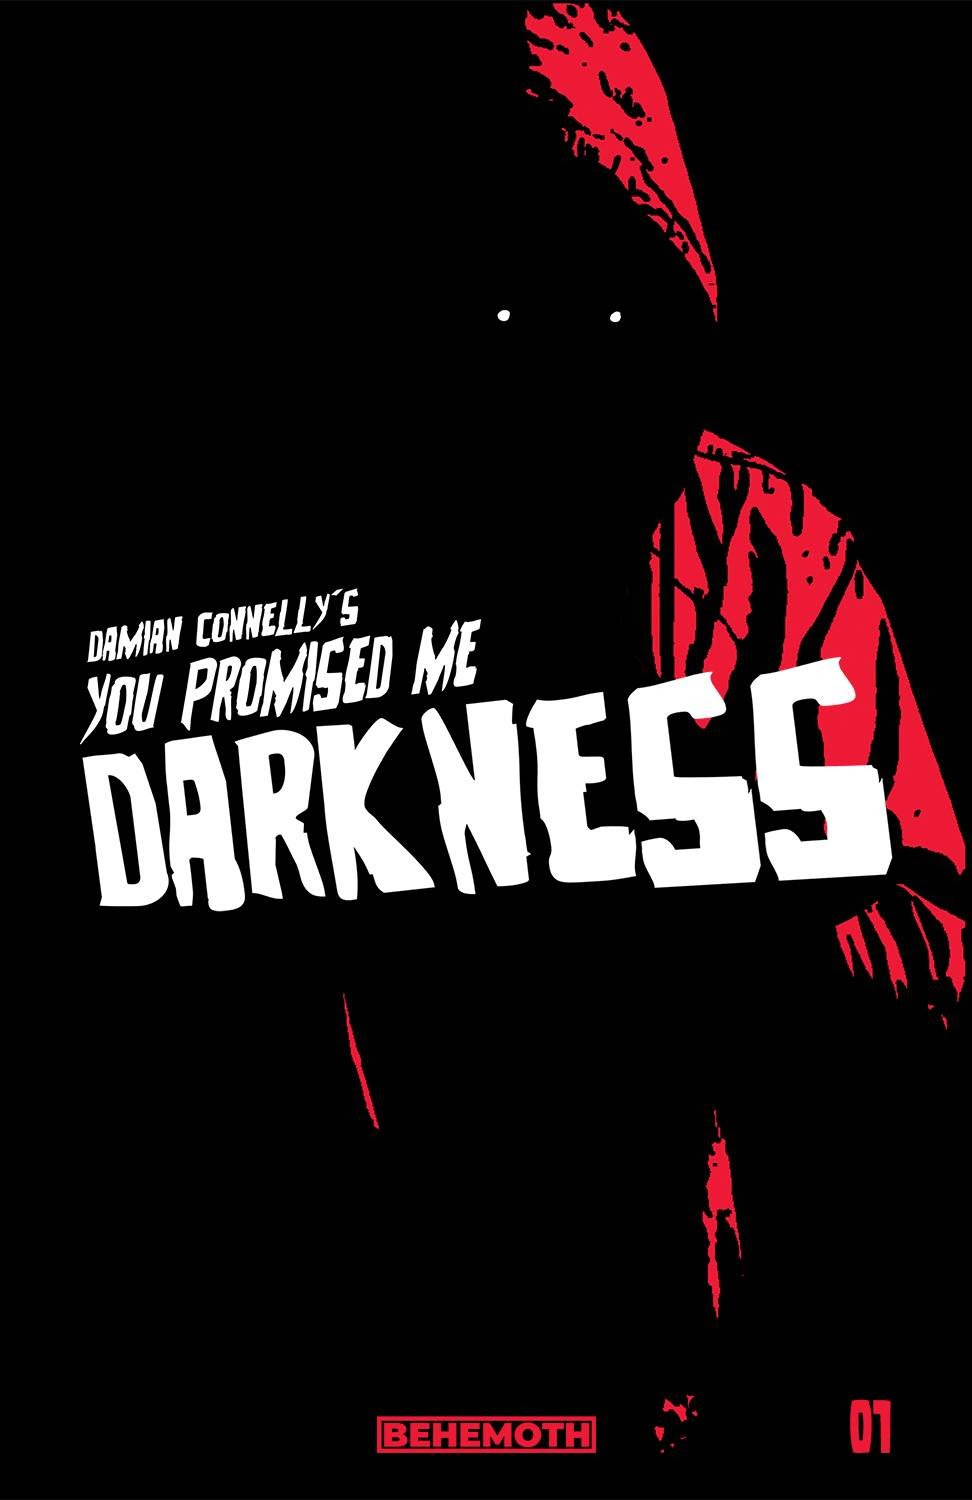 You Promised Me Darkness By Damian Connelly